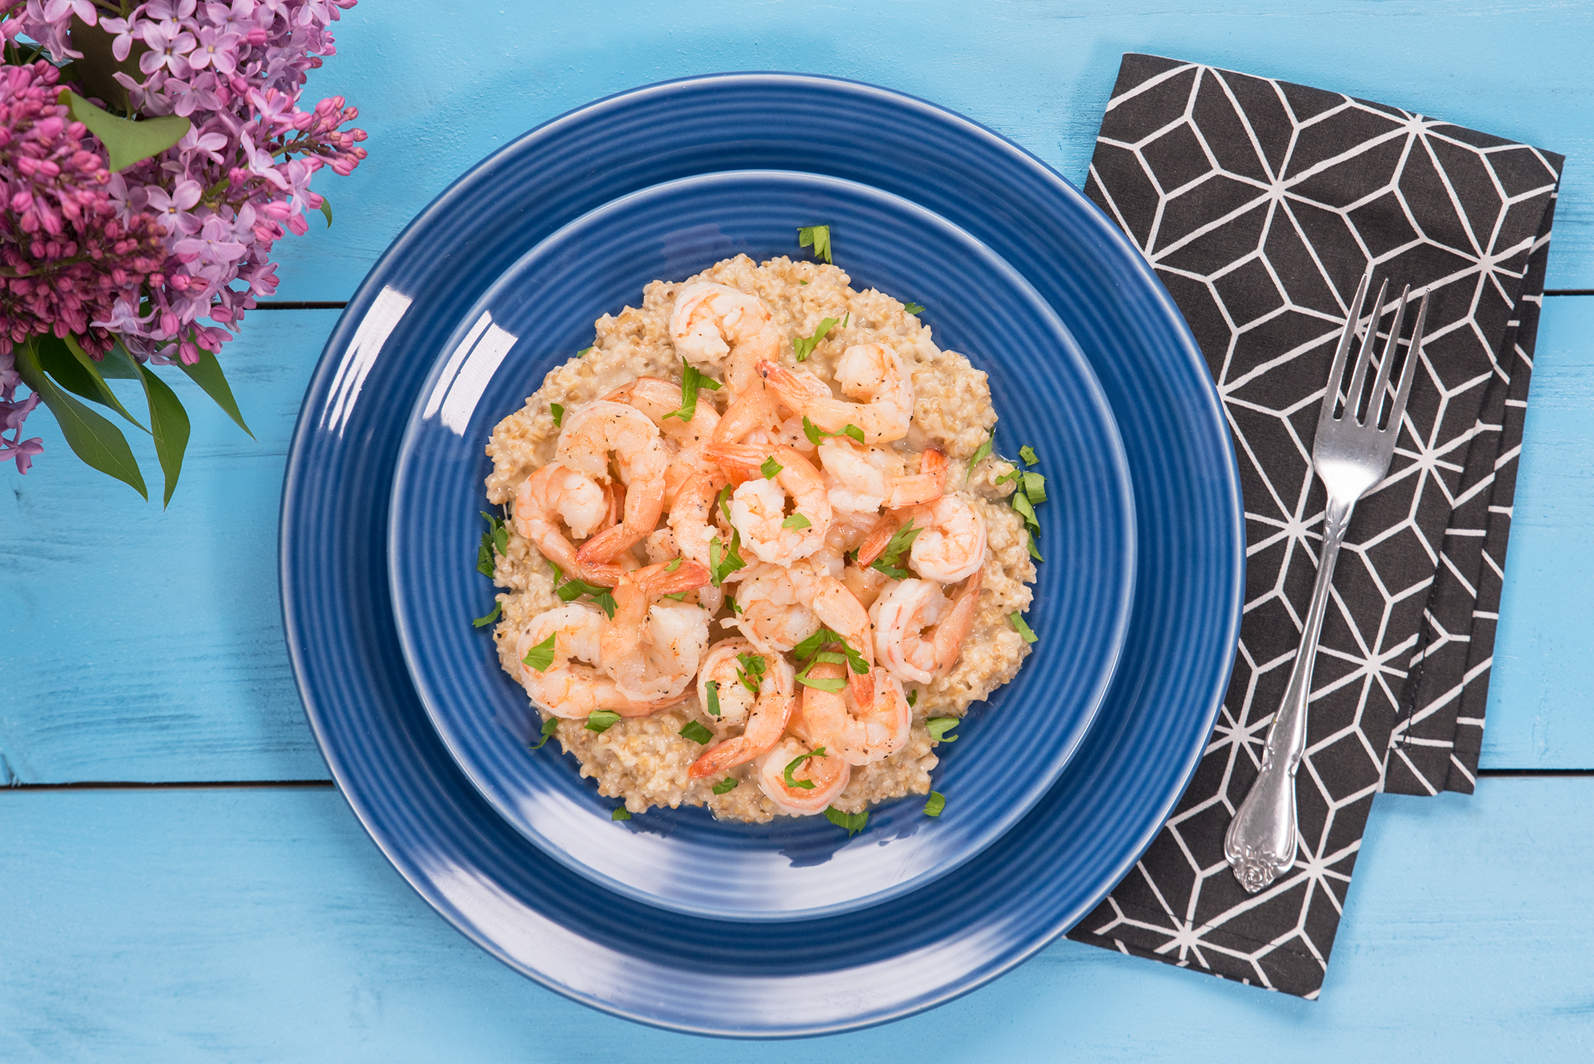 Shrimp and Cheesy Oats pictures